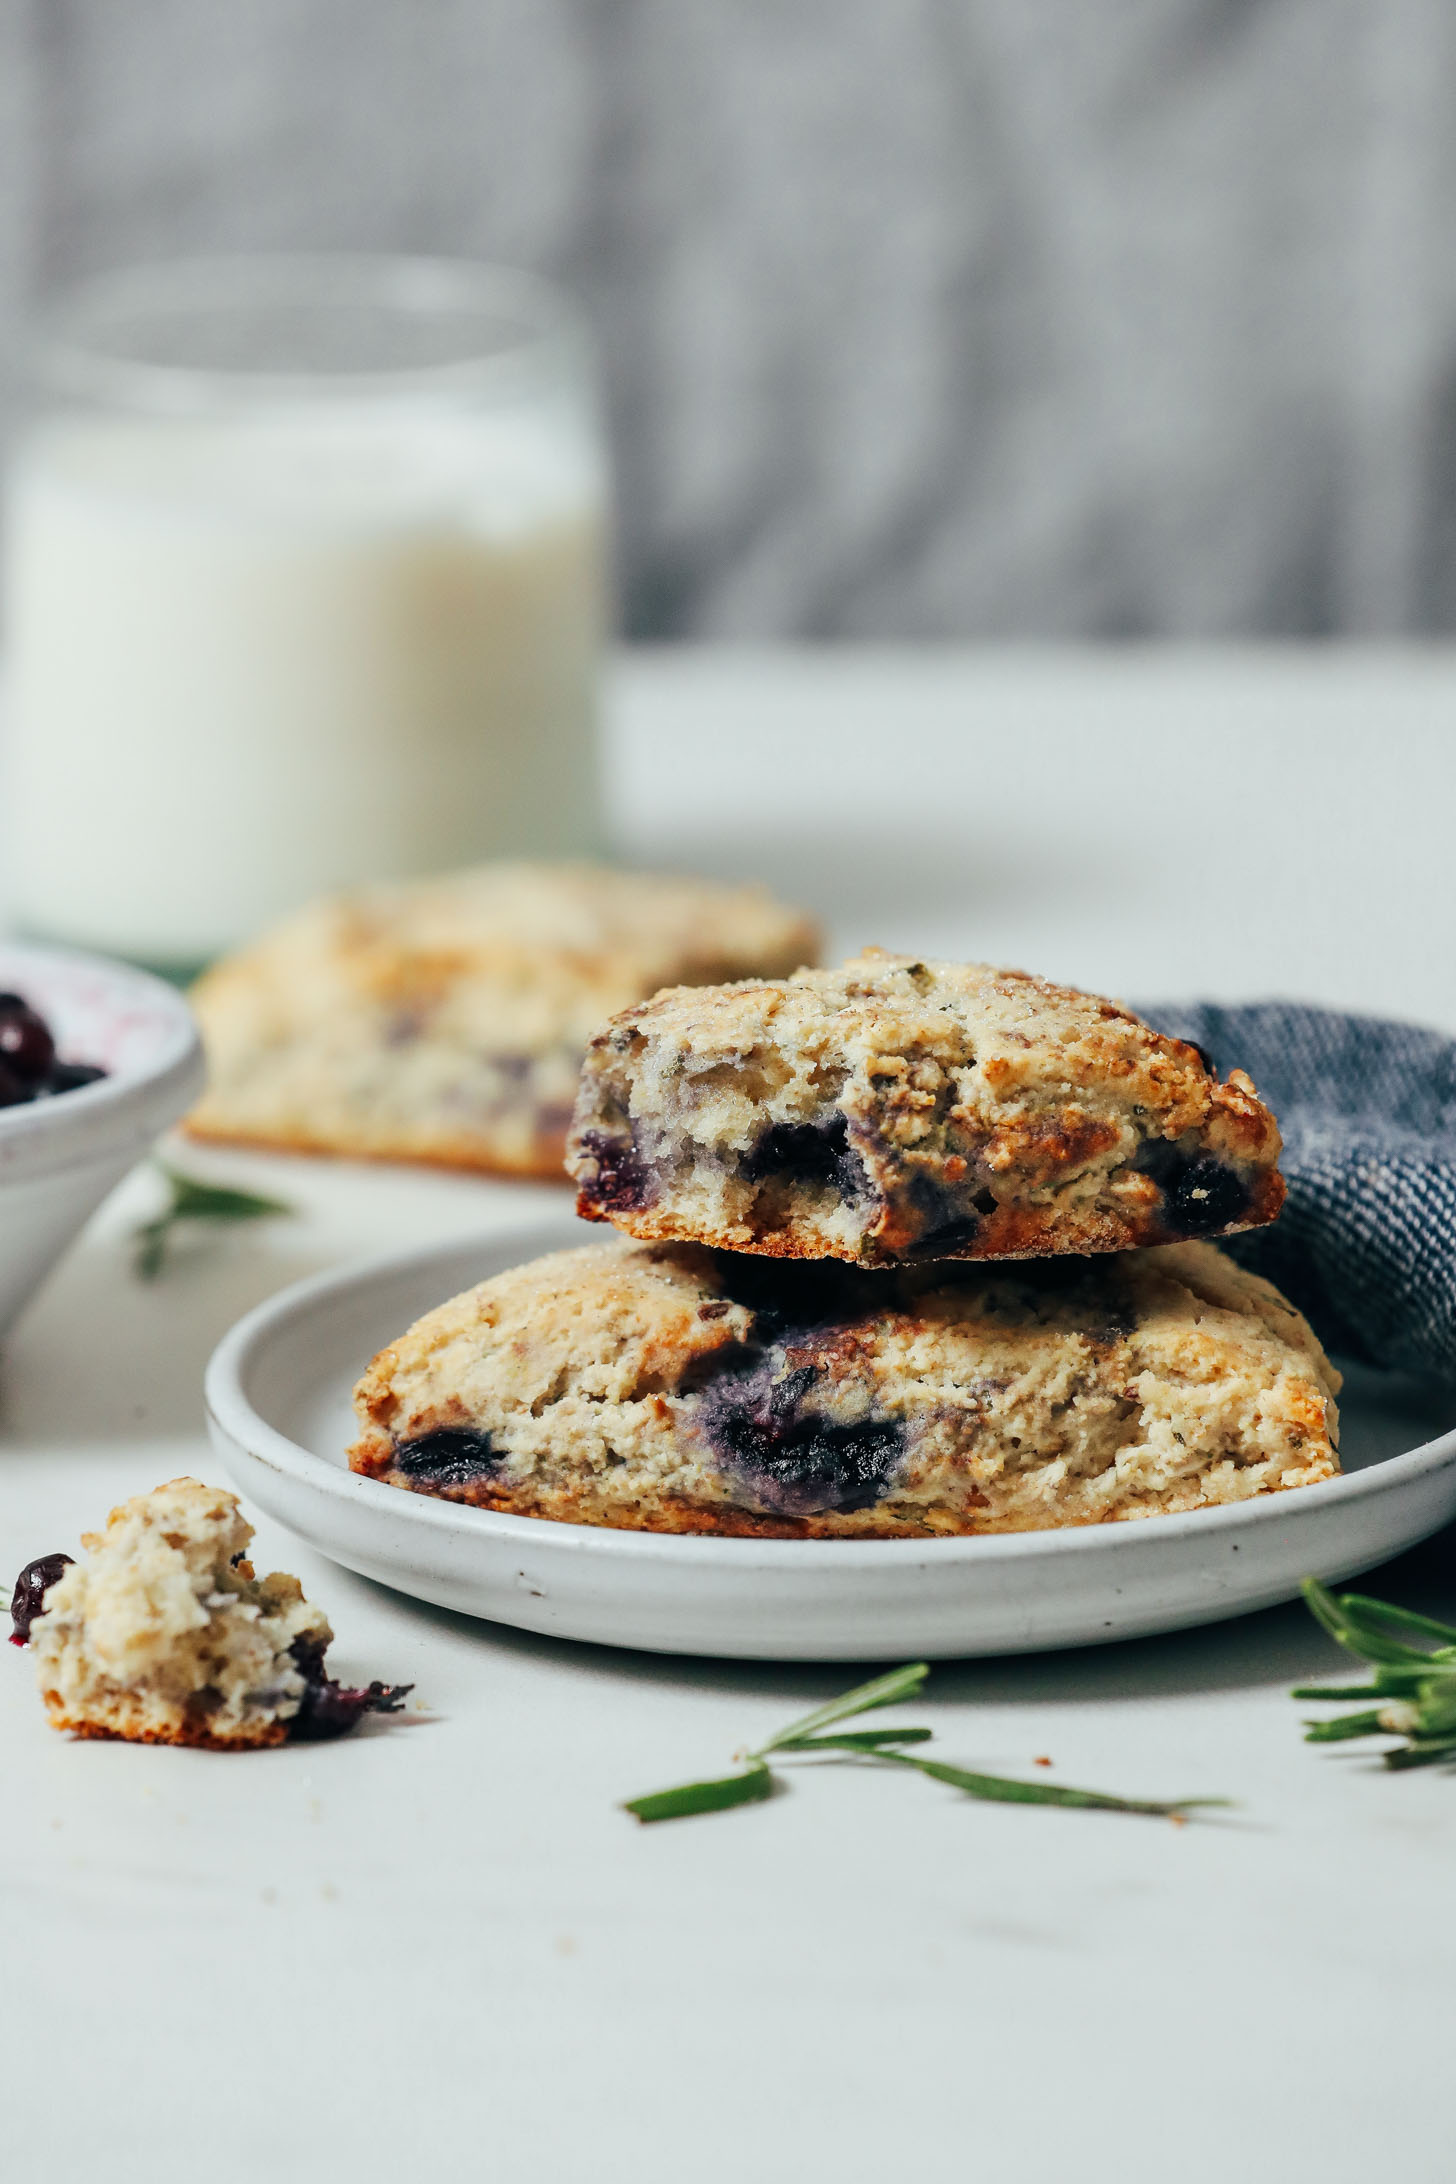 Small plate of Gluten Free Blueberry Scones beside a glass of almond milk